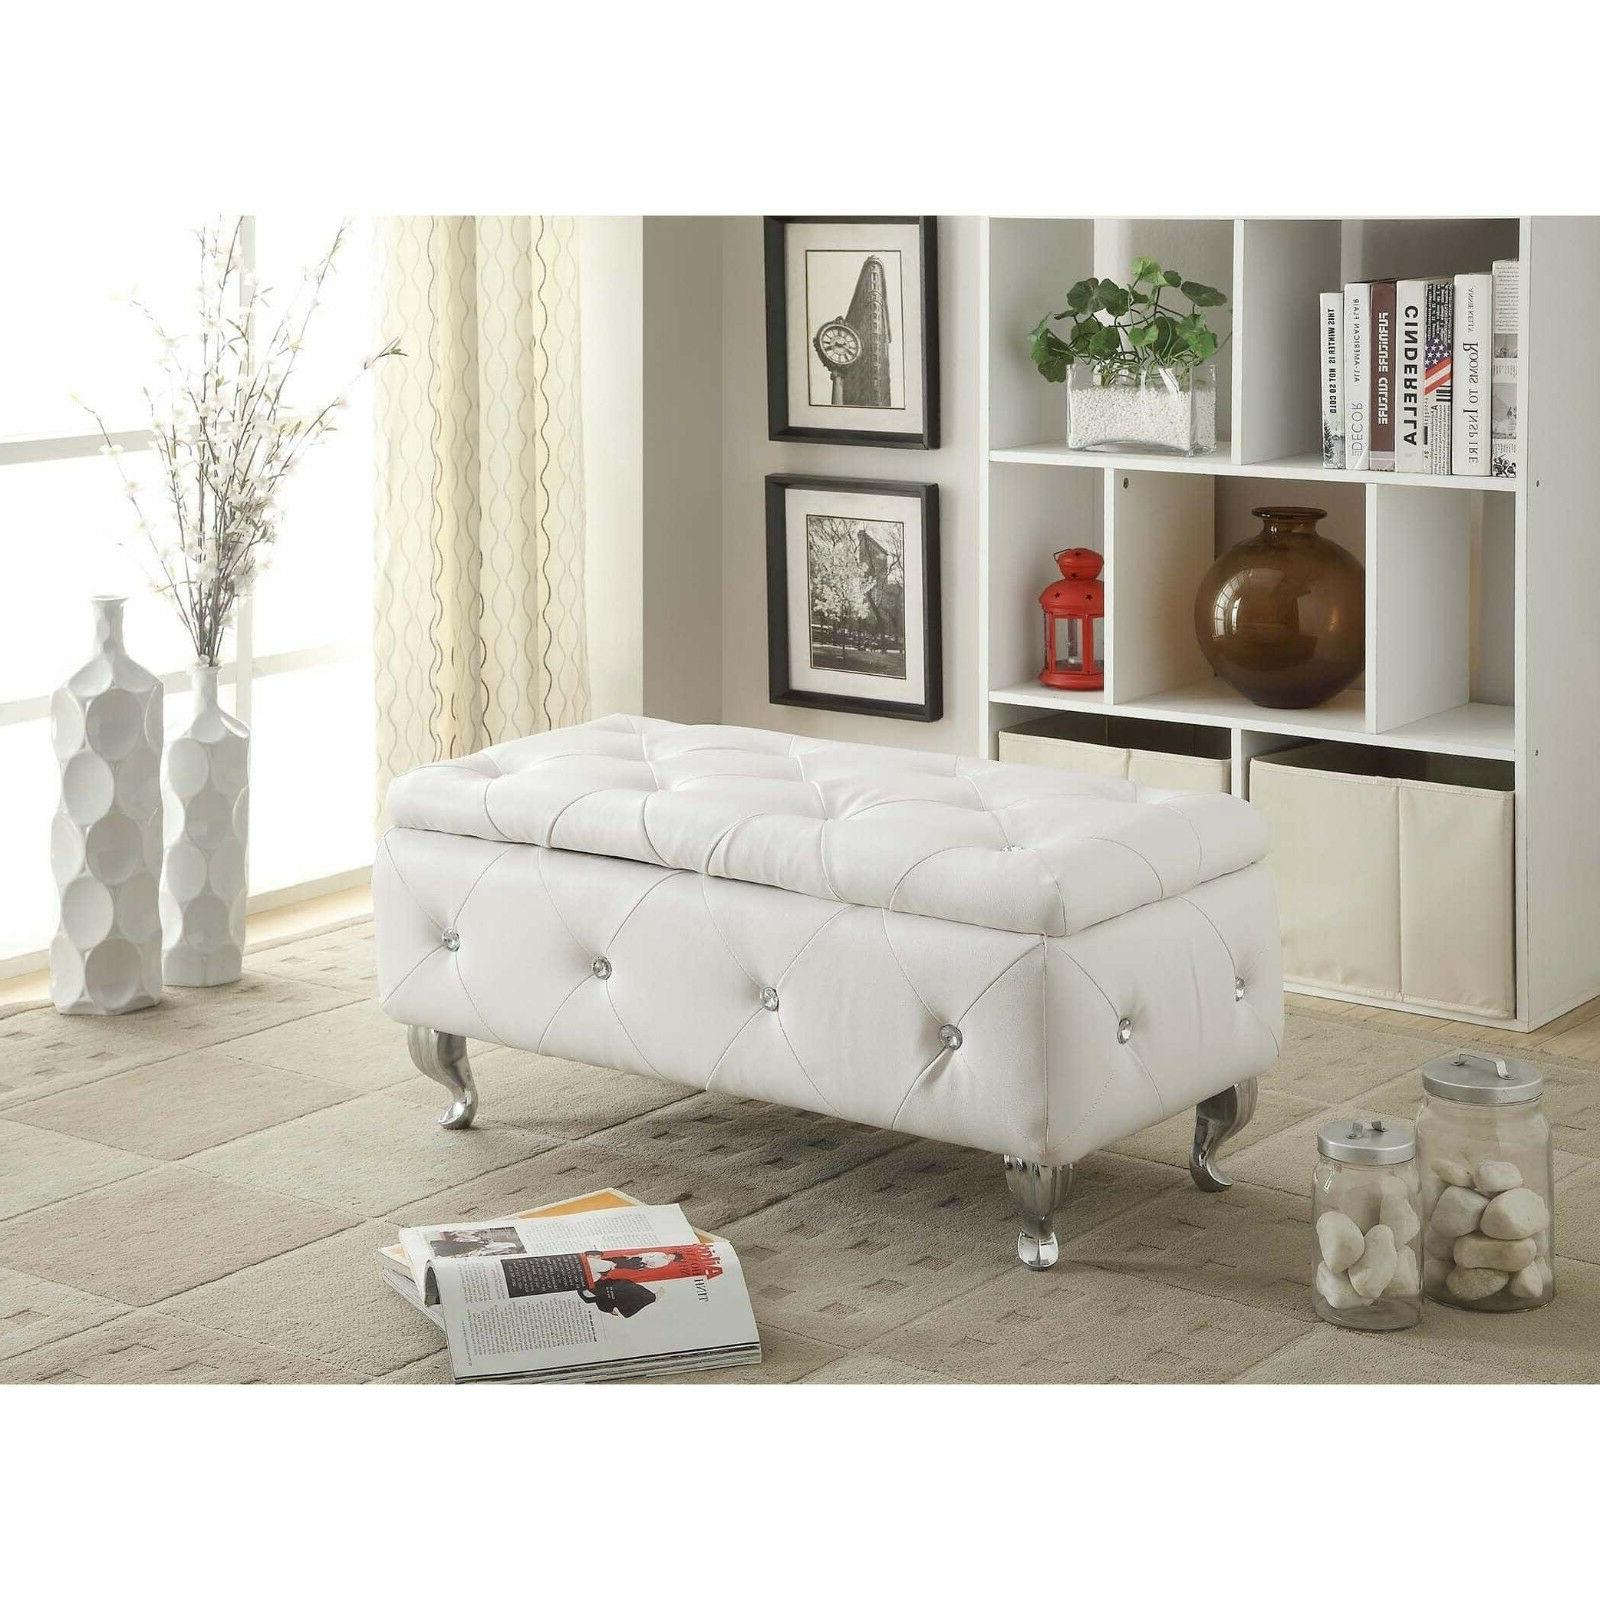 leather storage bench trunk chest upholstered modern footrest